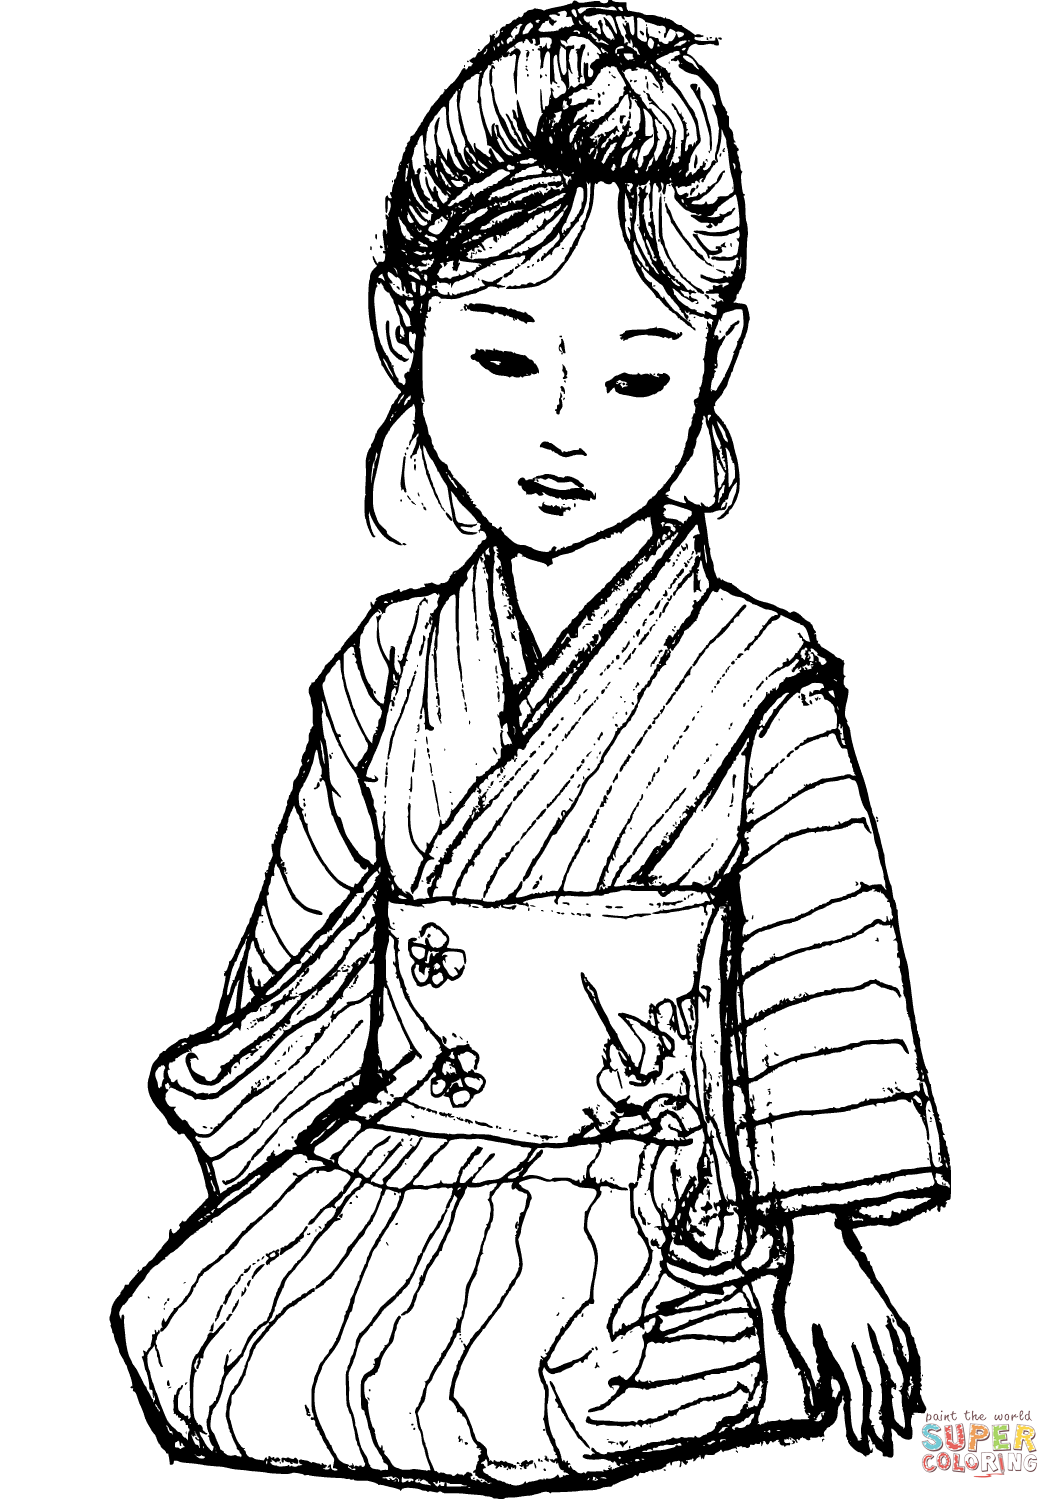 japanese anime girl coloring pages kimono girl lineart by ck union coloring books coloring pages anime girl japanese